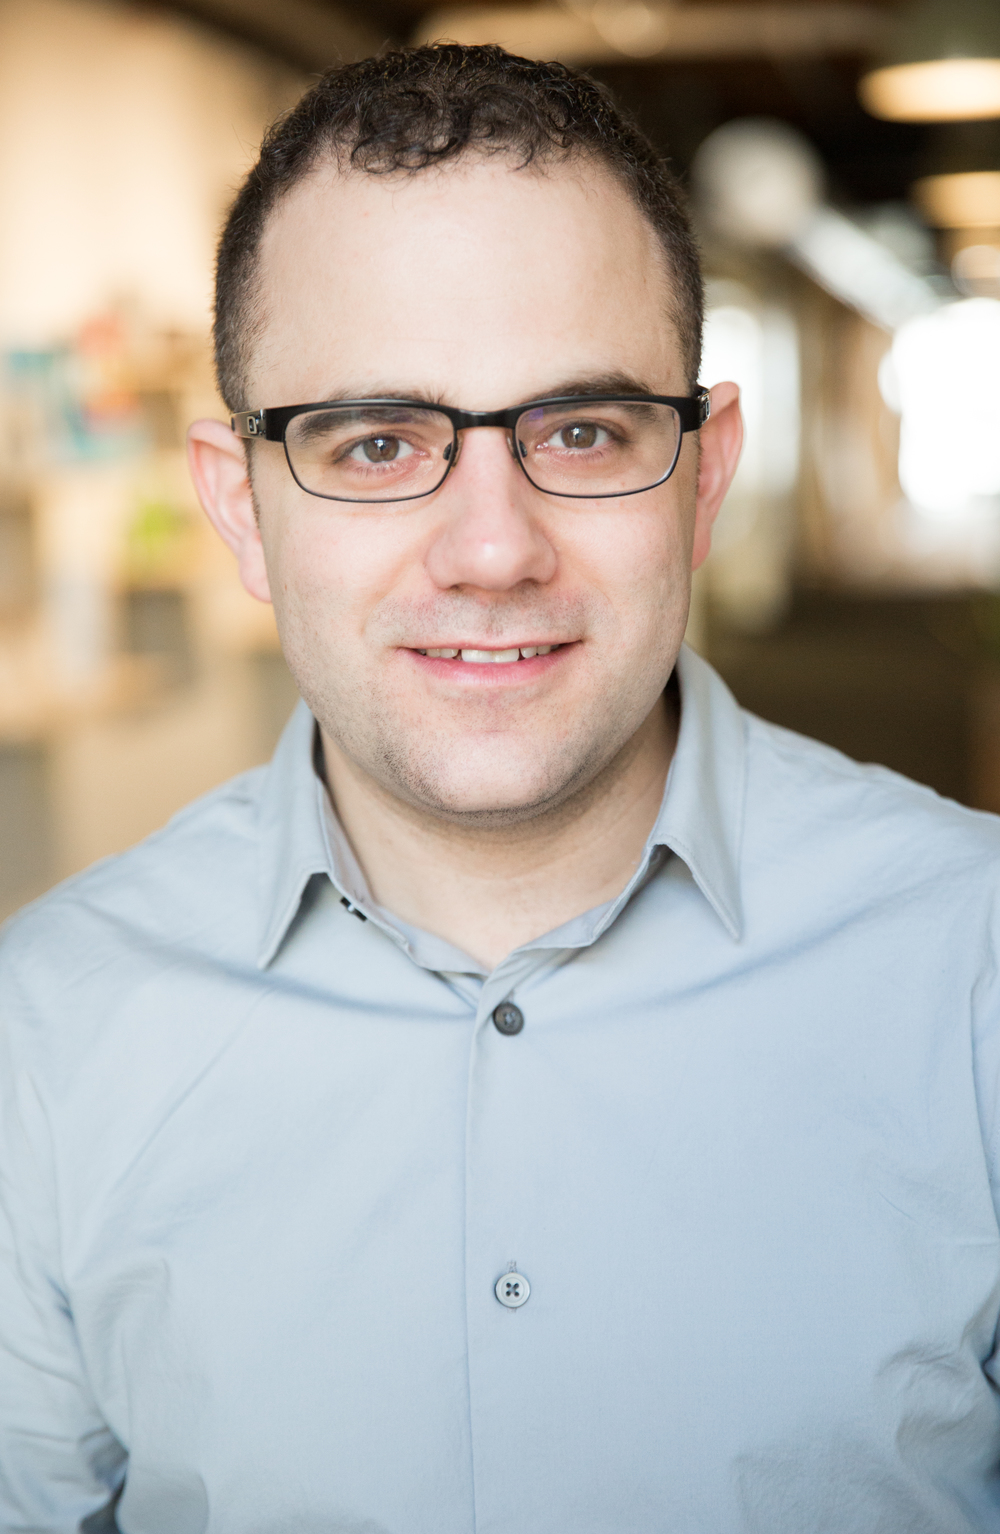 Nicholas Genovese, CSO and Co-Founder